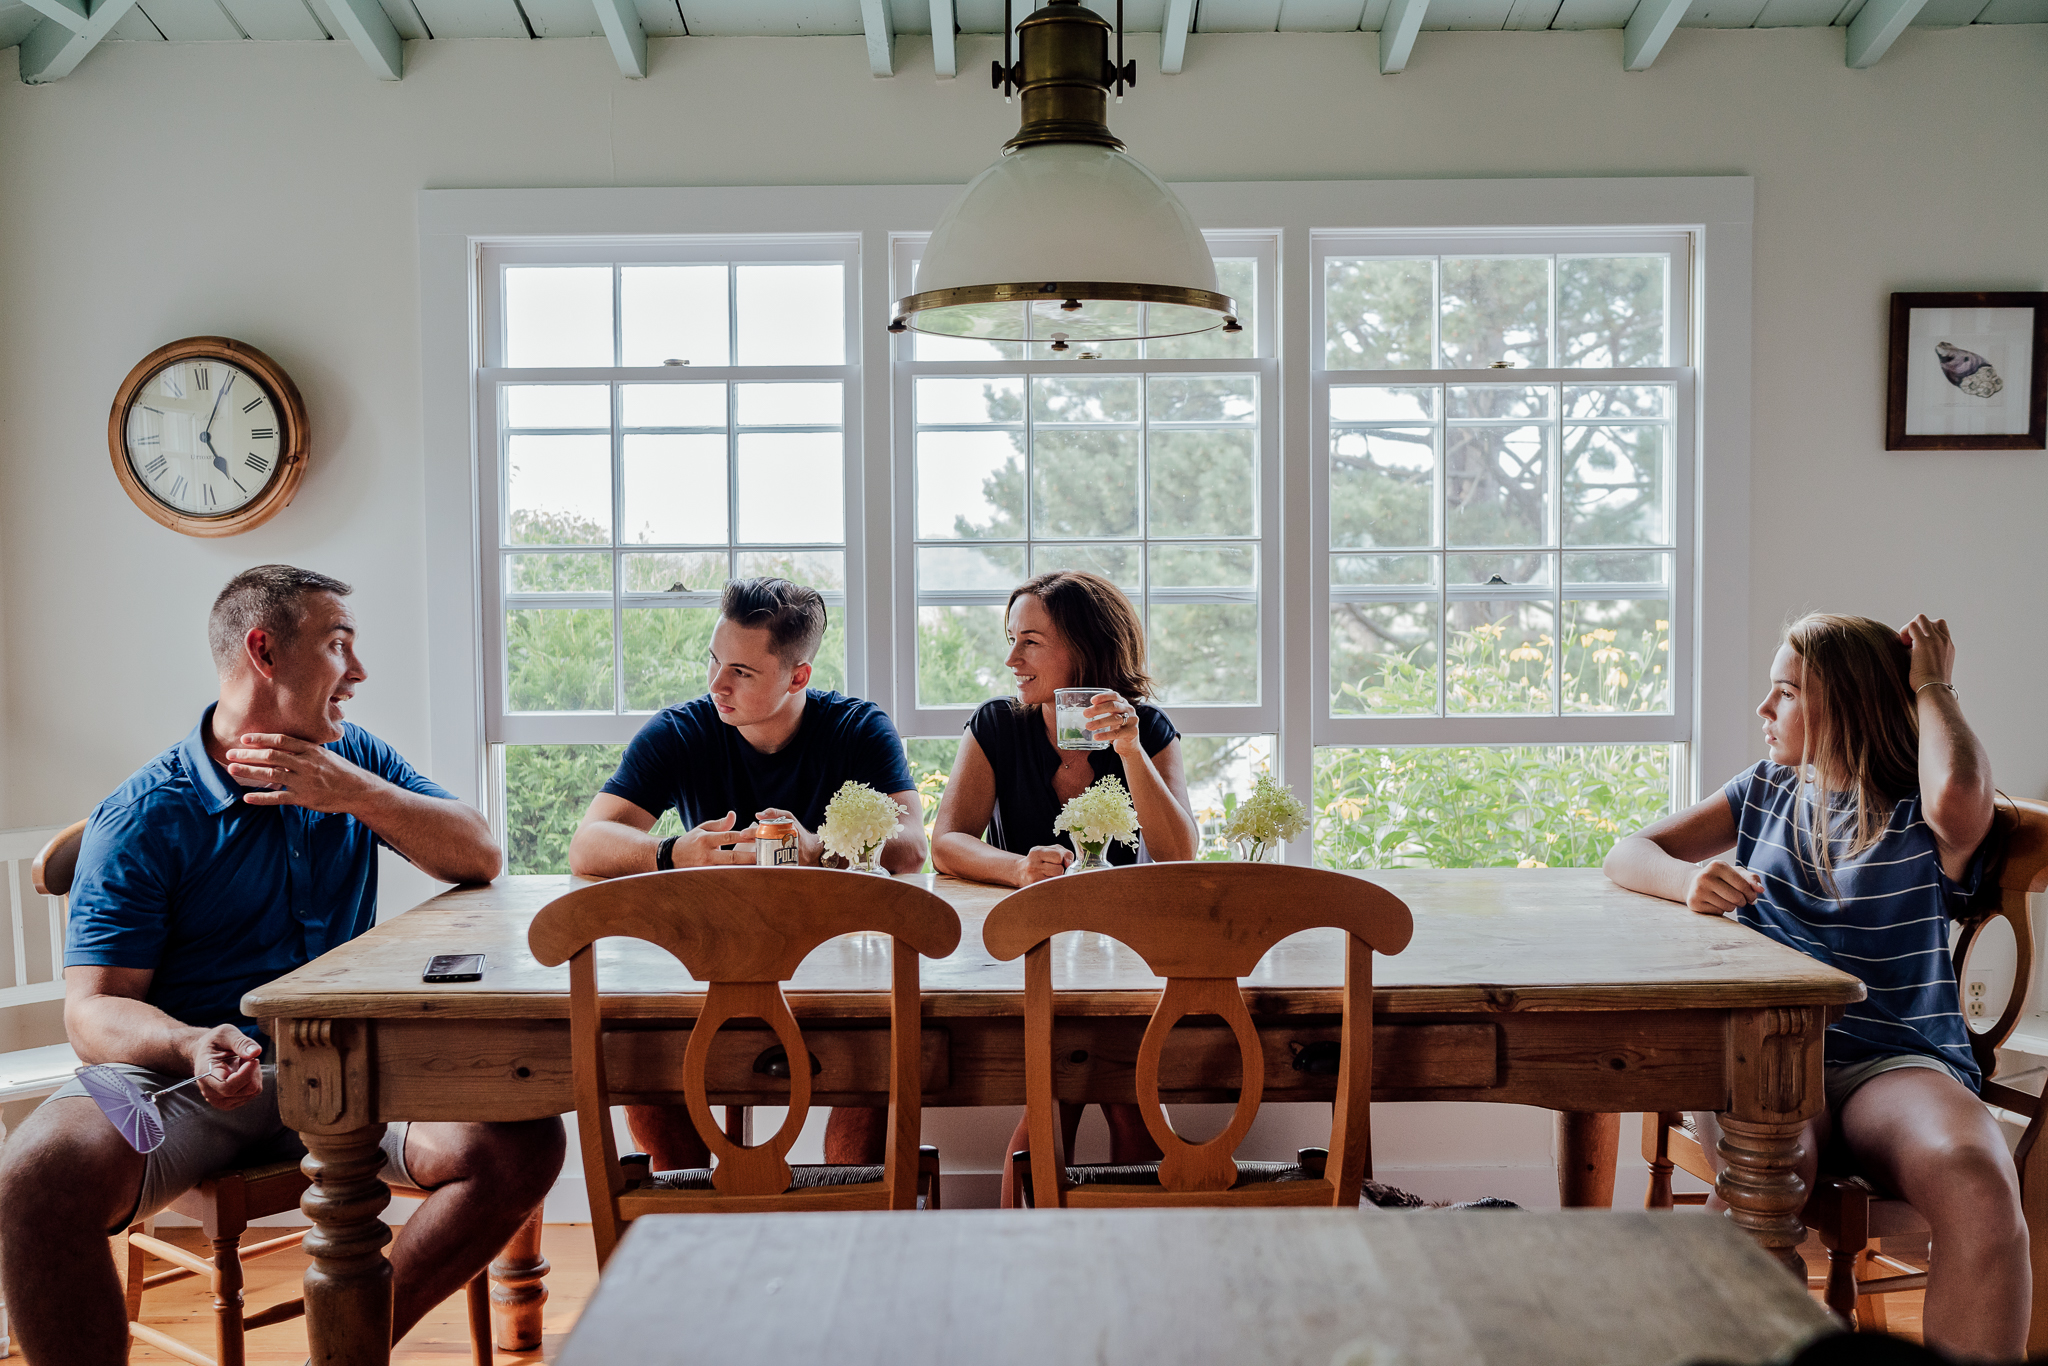 mom, dad sitting at kitchen table with teenage son and daughter